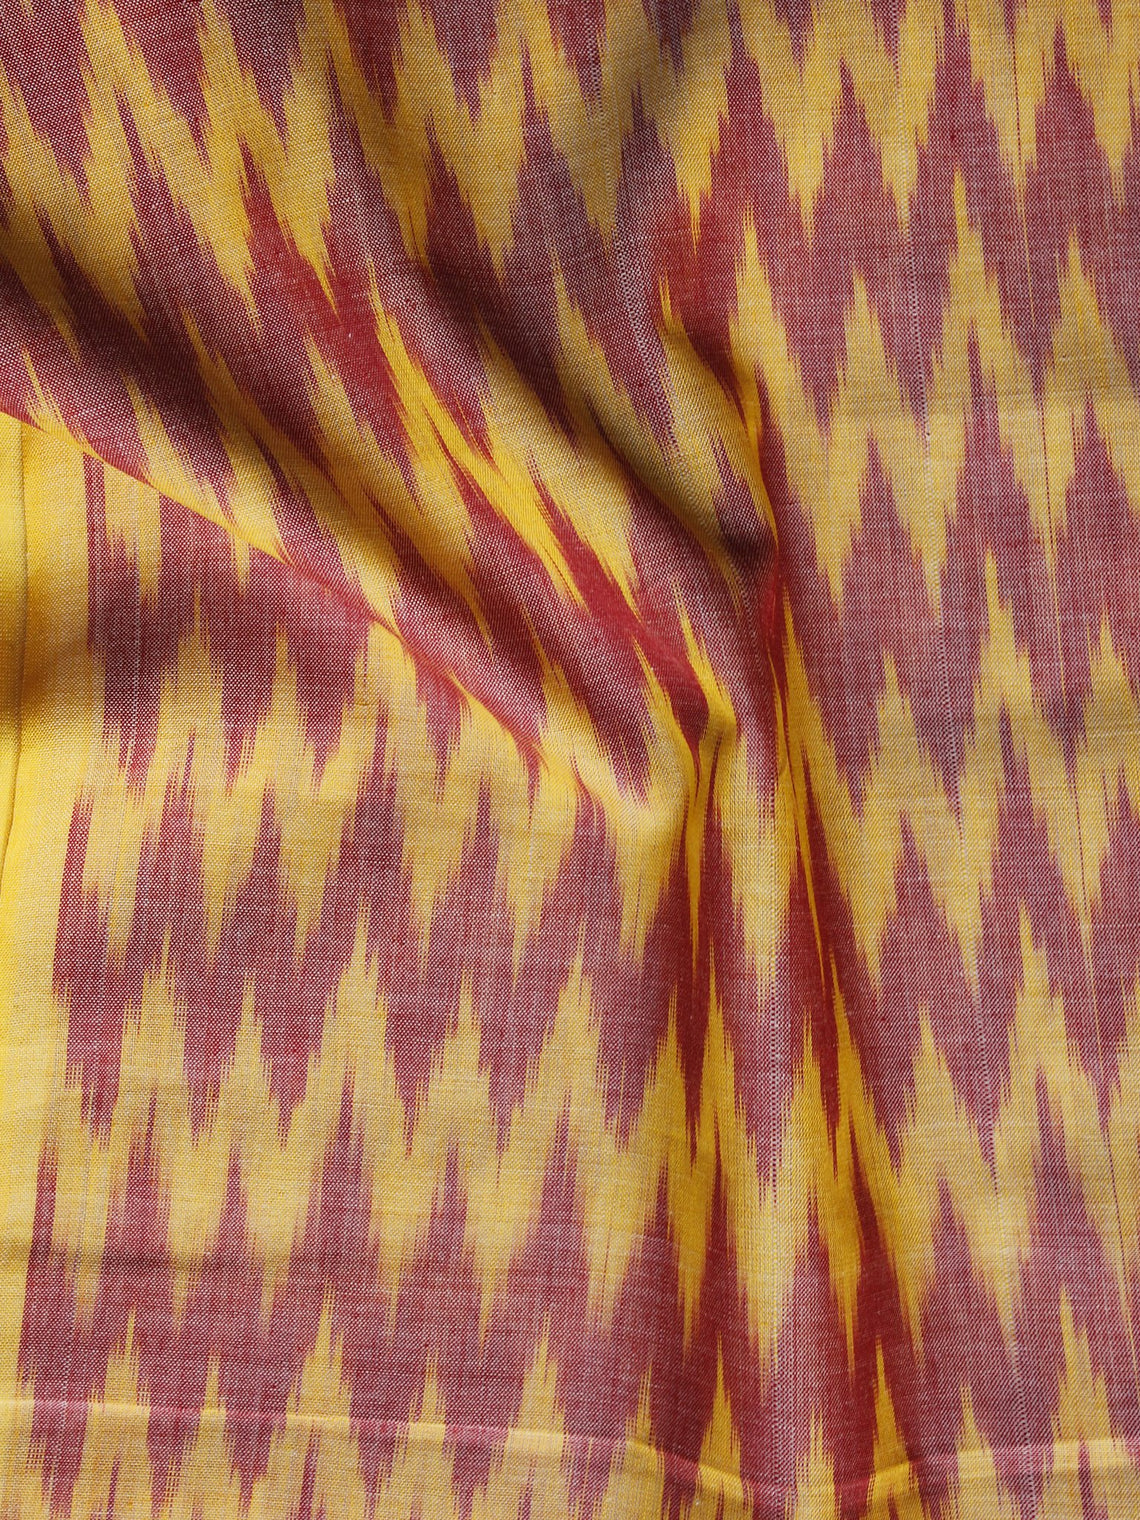 Peach Yellow Pochampally Hand Weaved Ikat Mercerised Fabric Per Meter - F003F1295